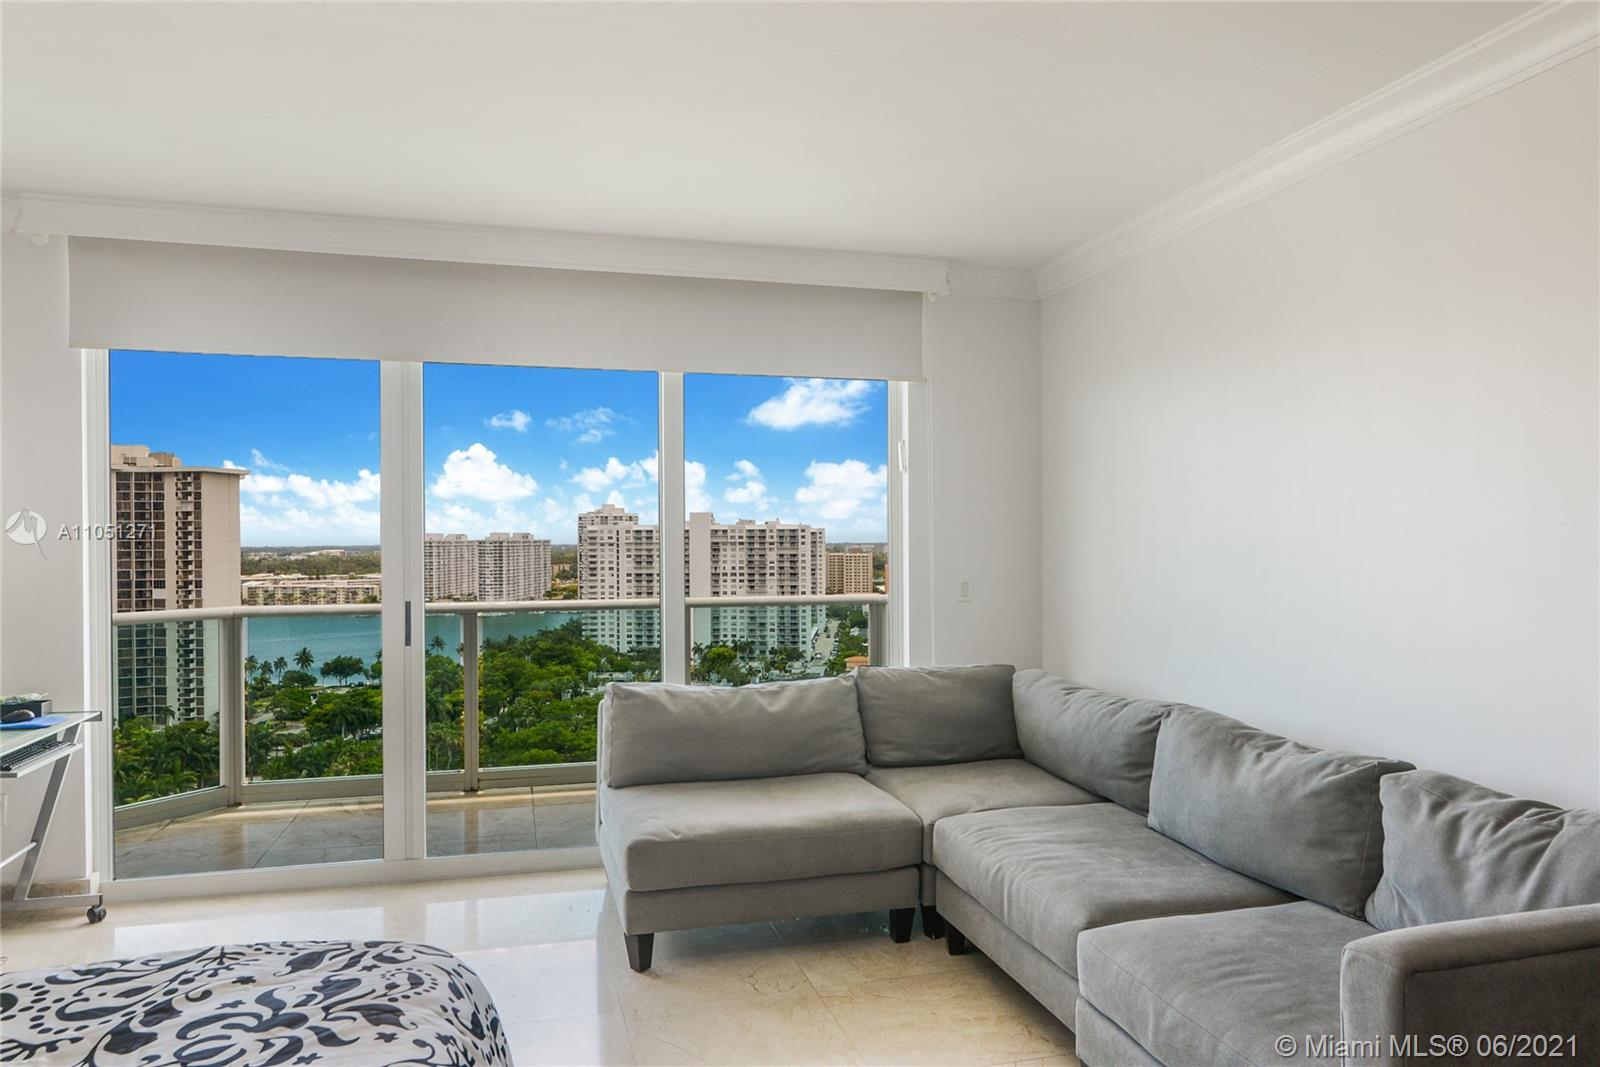 Photo of 3301 183rd St #1906, Aventura, Florida, 33160 - 4 Bedrooms and Laundry room